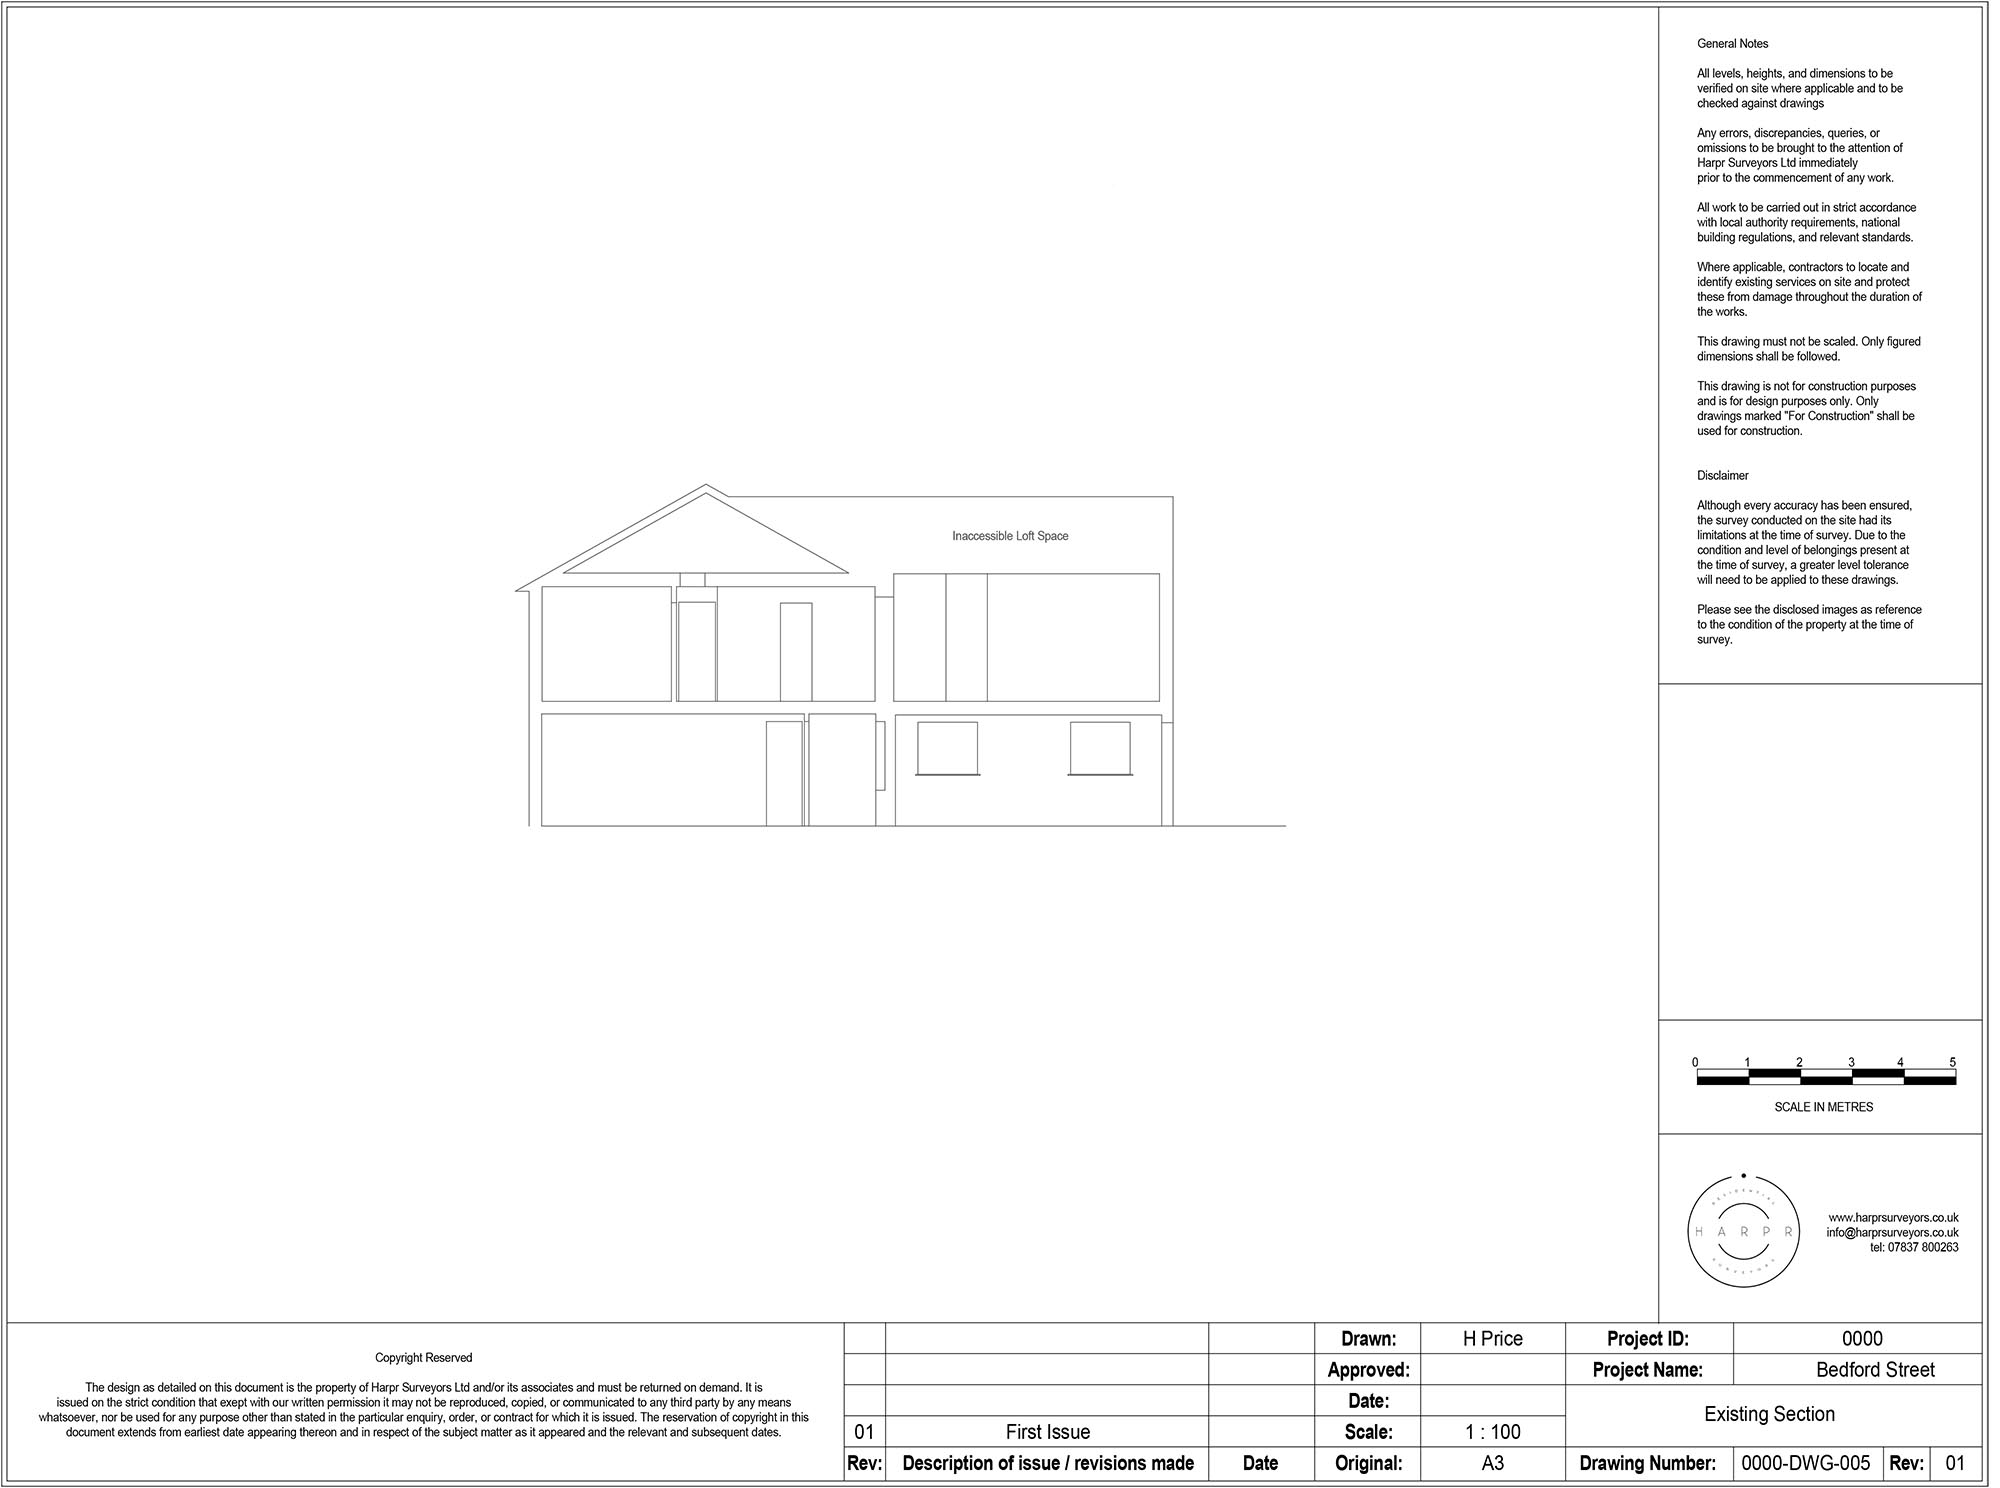 Bedford Street Hitchin Section Drawing